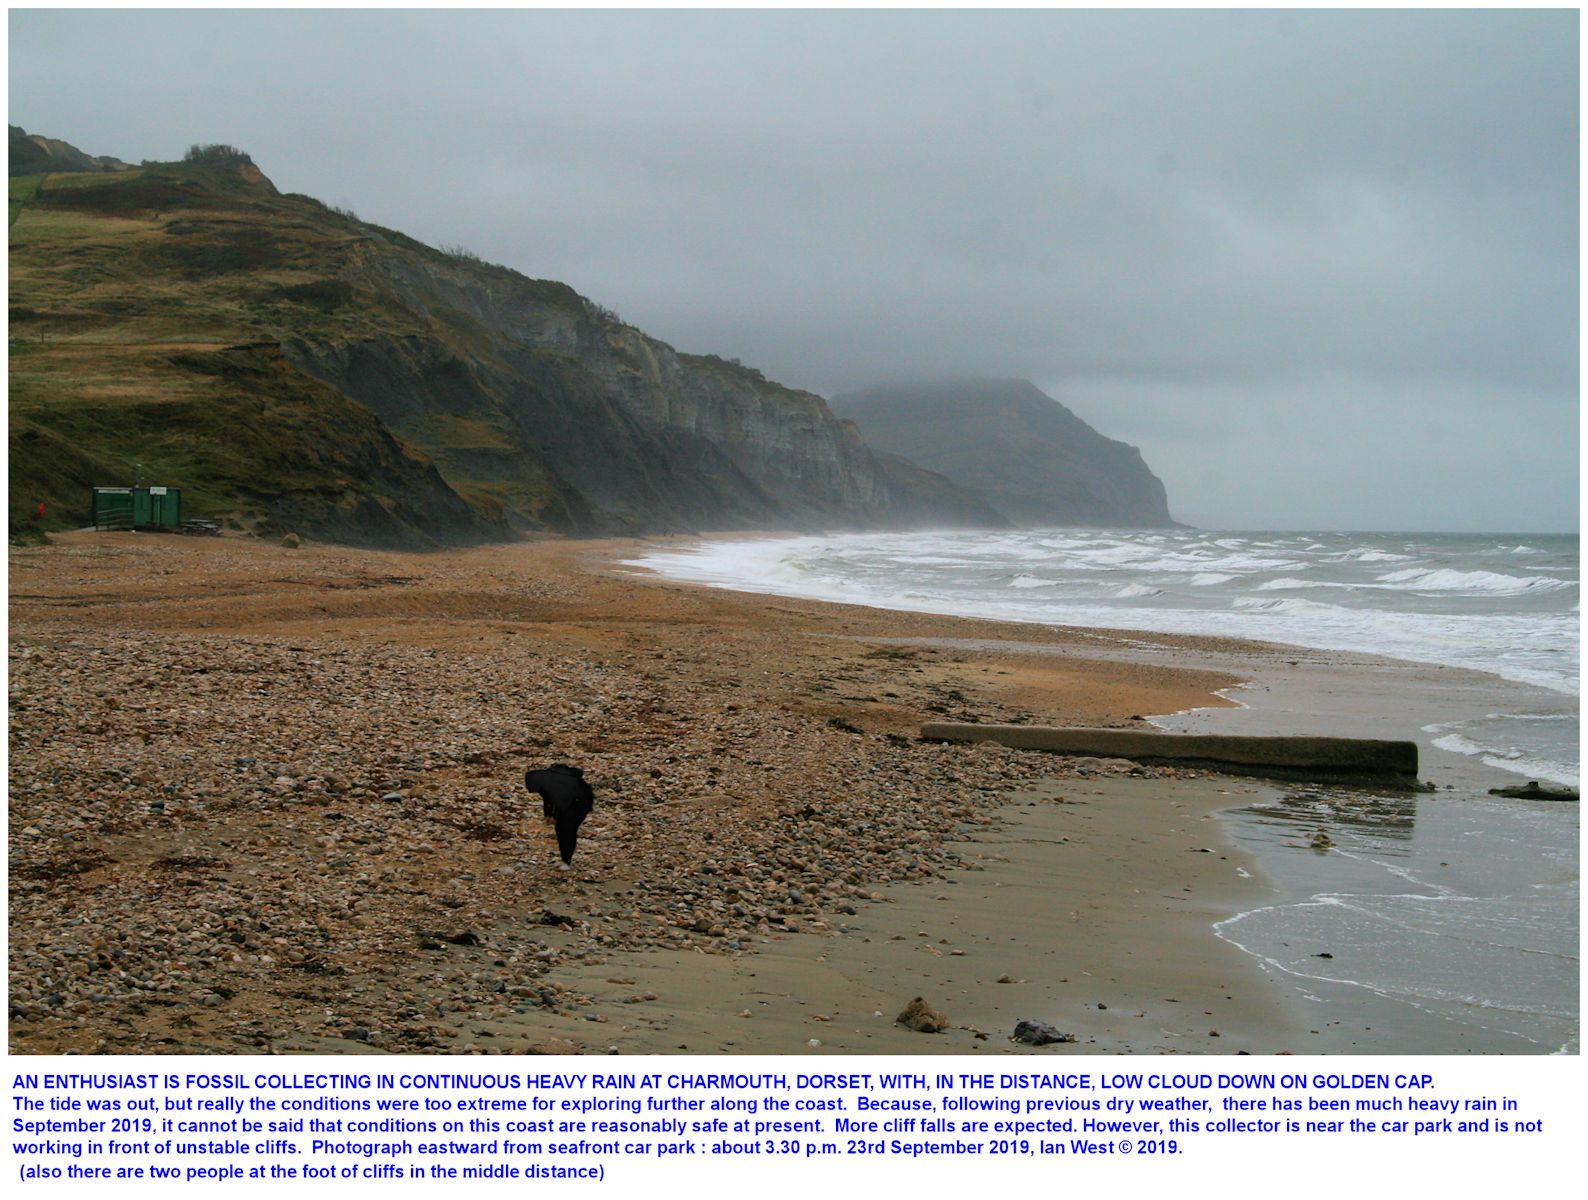 Looking eastward from the sea-front at Charmouth, Dorset, towards Golden-Cap, in wet,  stormy conditions, 22rd September 2019, Ian West